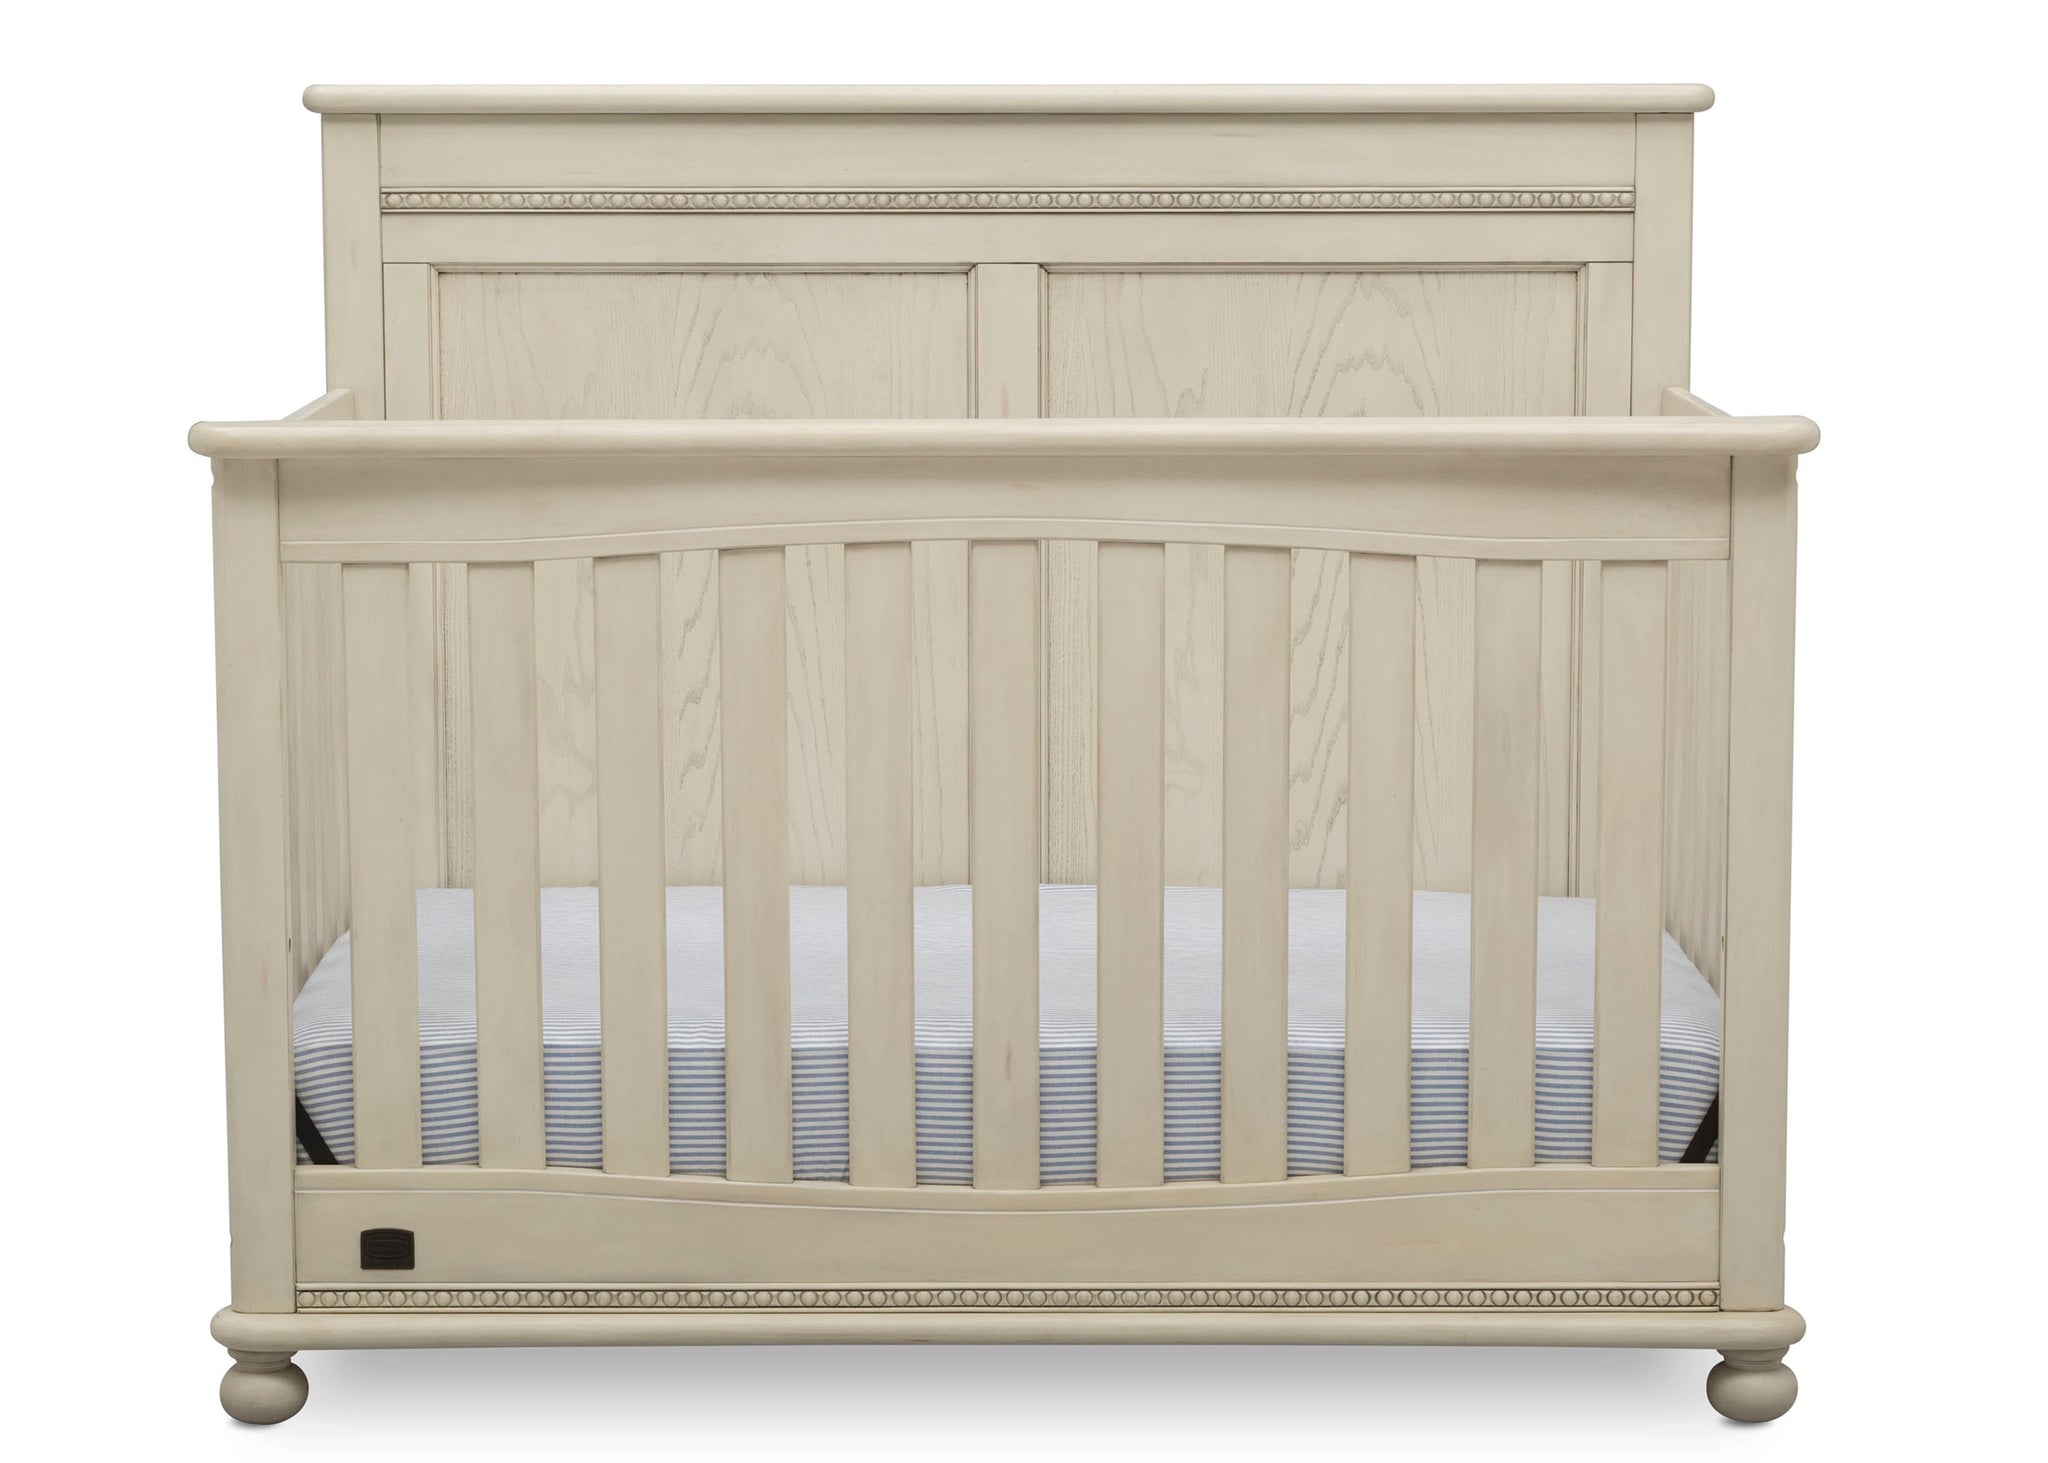 Delta Children Antique White (122) Fontana 4-in-1 Convertible Crib (W337350) Front Facing Silo, a2a